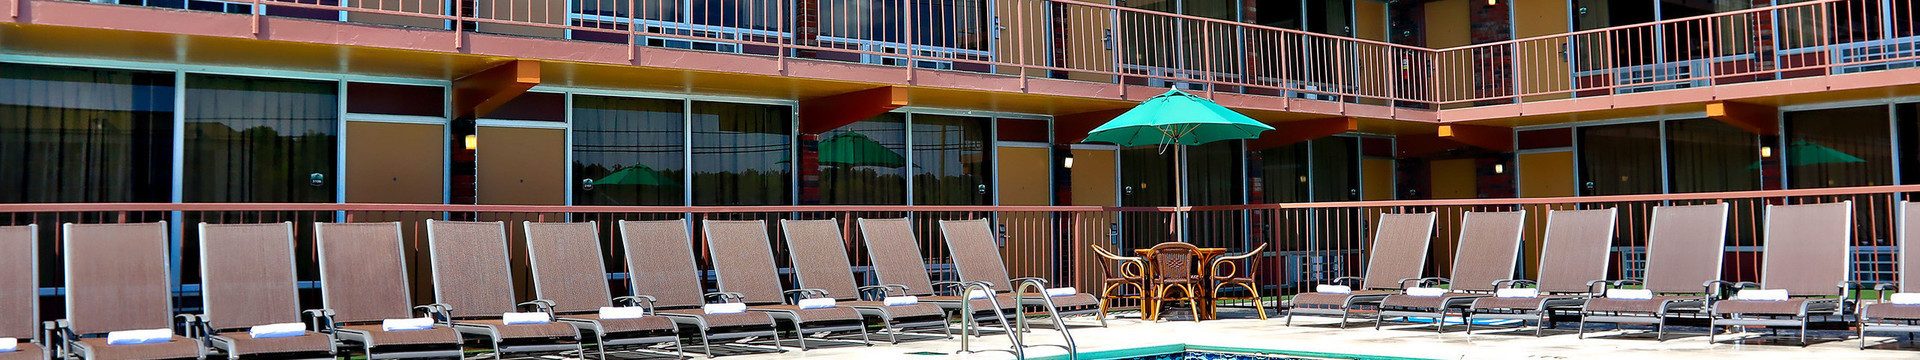 Senior citizen travel offers and discounts at Wild Bear Inn and our select portfolio of Westgate Resorts in Pigeon Forge, TN!